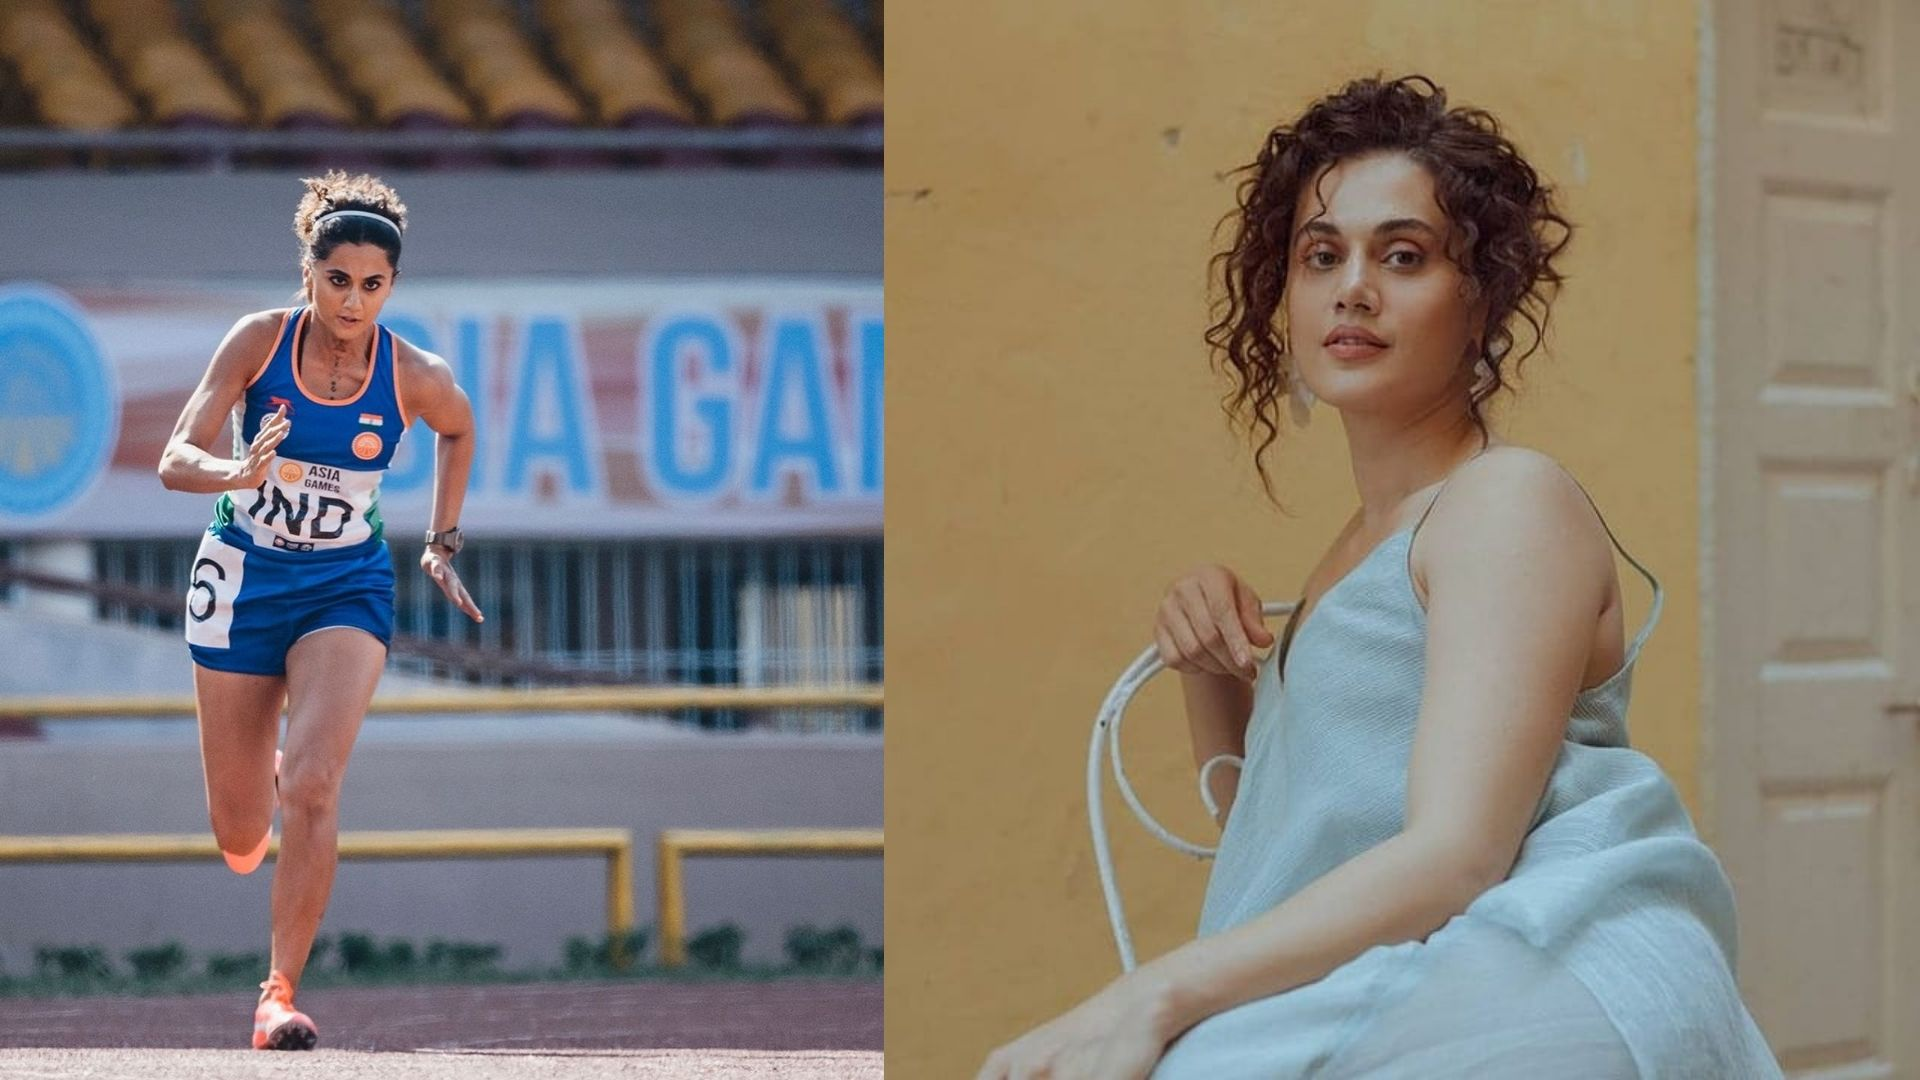 Rashmi Rocket Star Taapsee Pannu Has A Hilarious Take On The Trolls; Says 'If You Throw Lemon At Me, I'll Make Lemonade Out Of It'